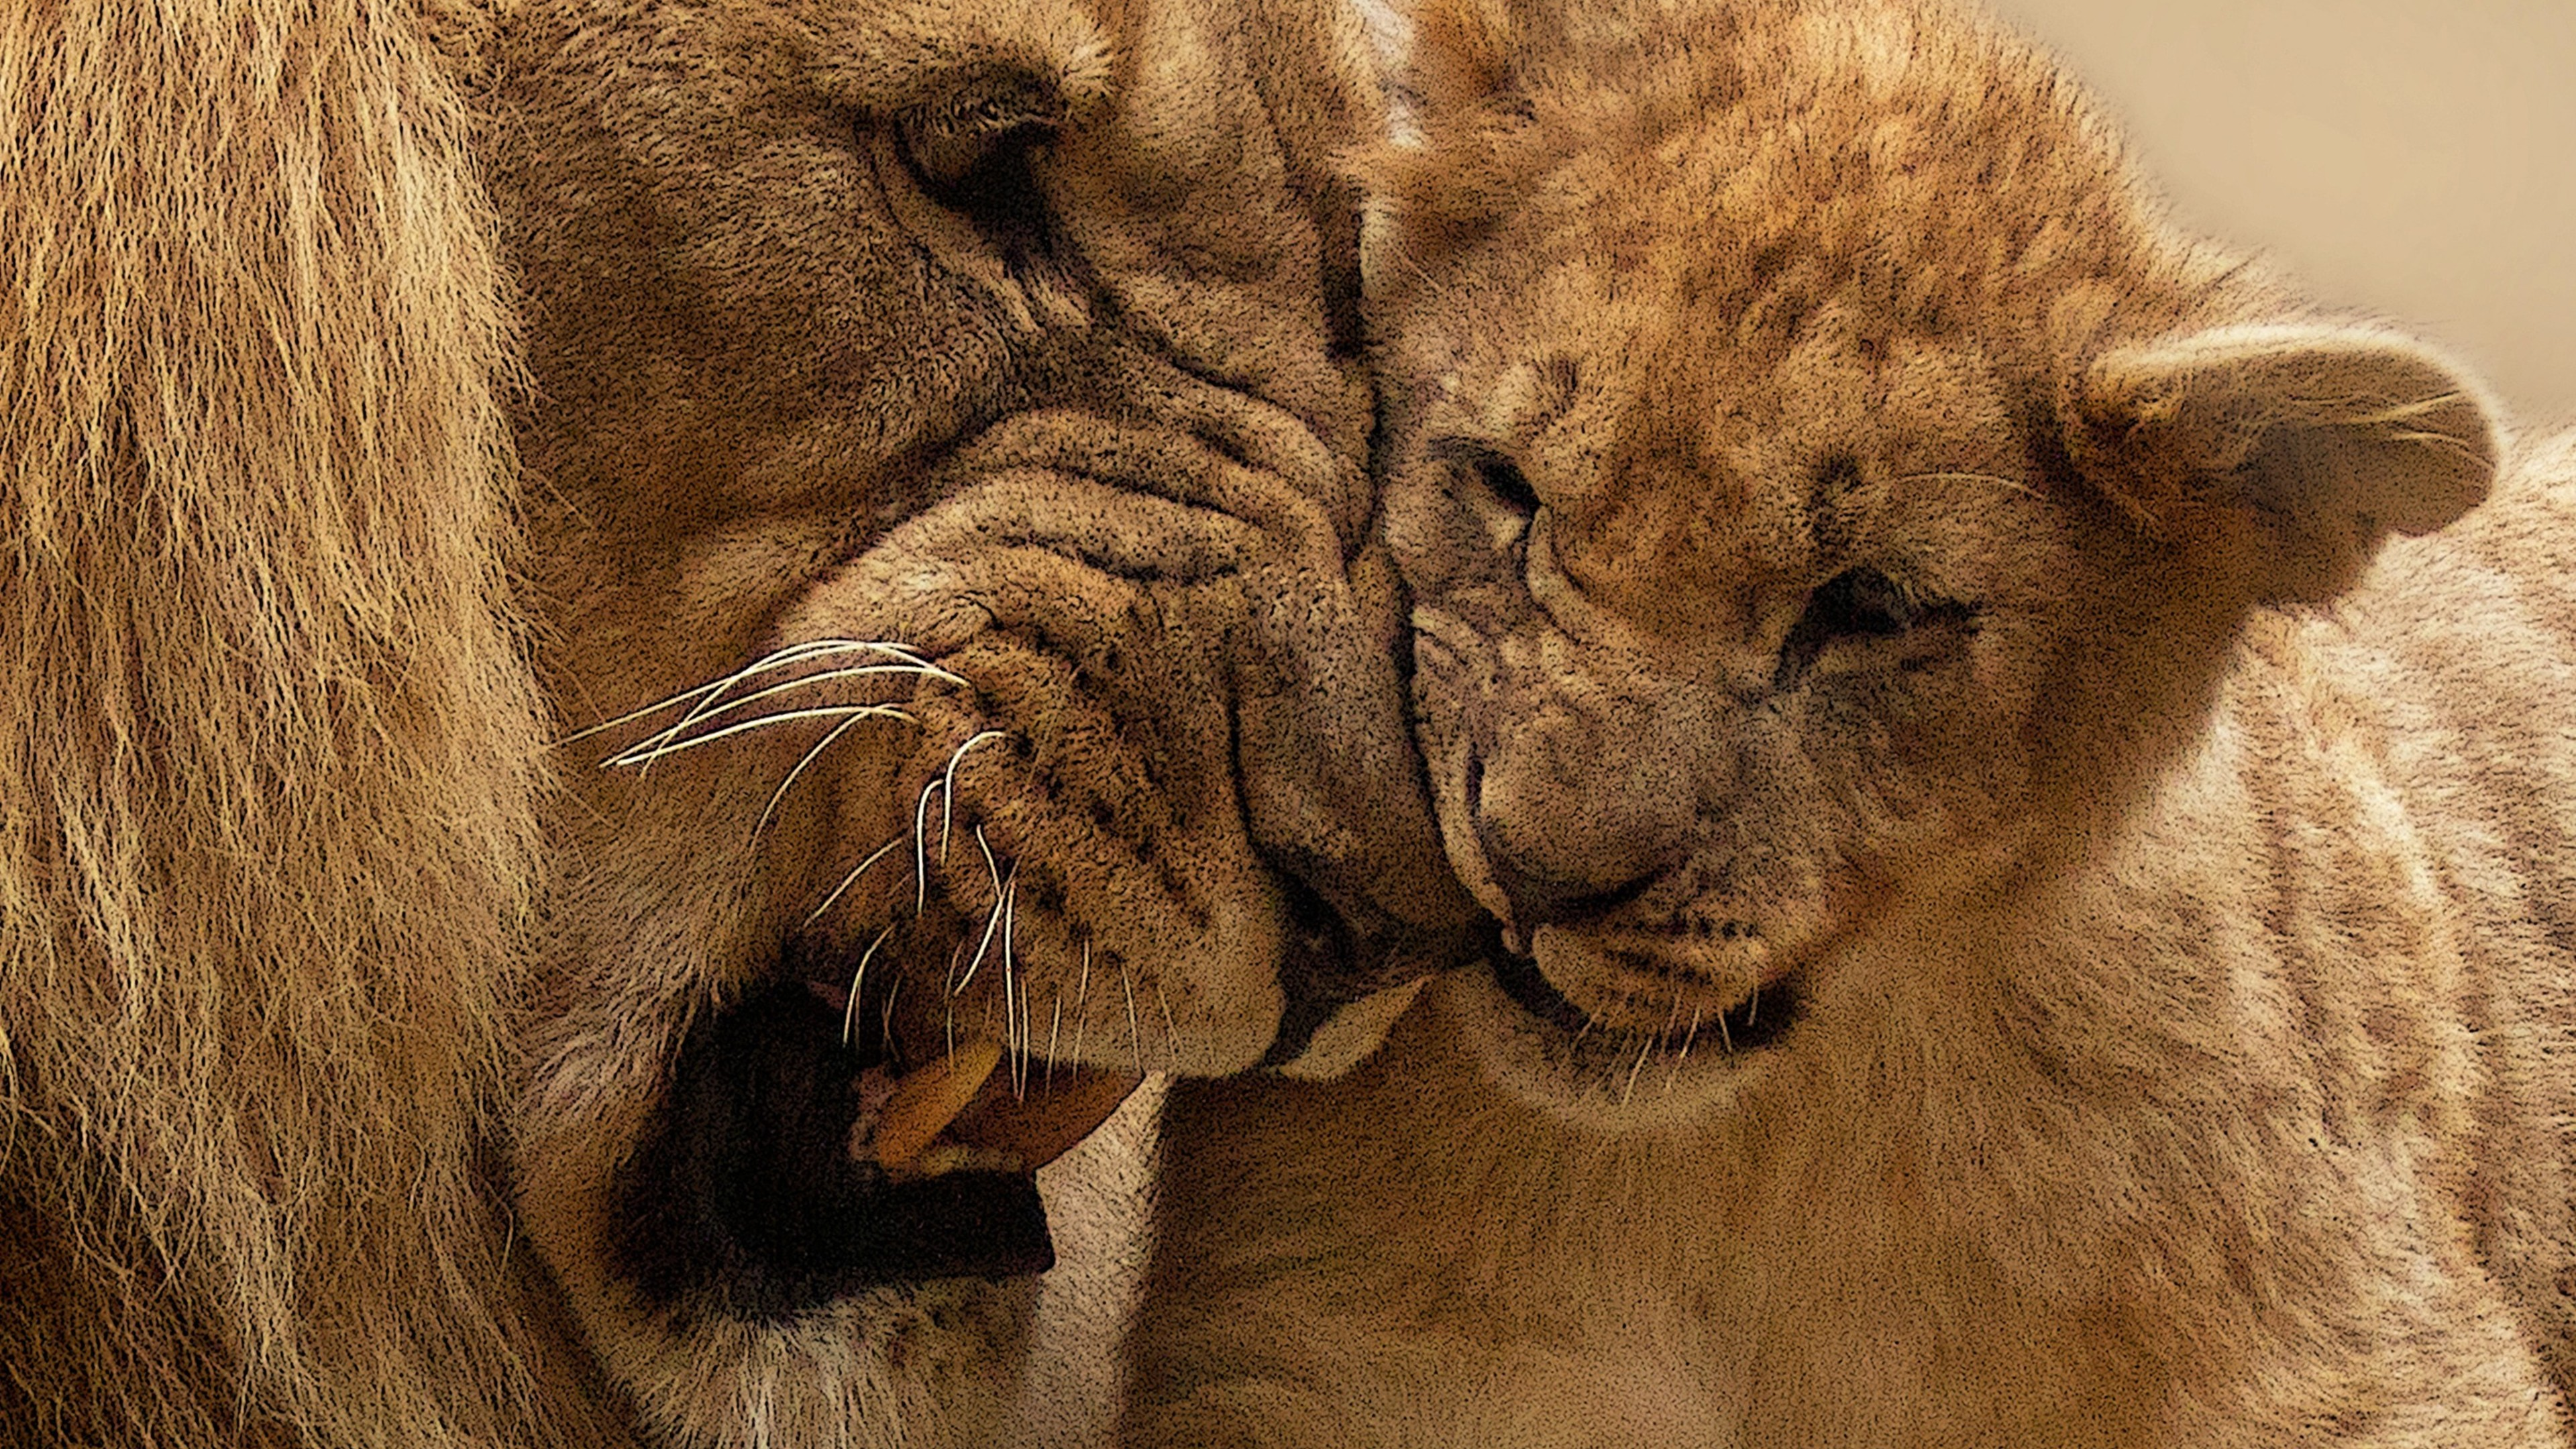 Funny Cute Cats Wallpapers Lion Mother Cub Hd Animals 4k Wallpapers Images